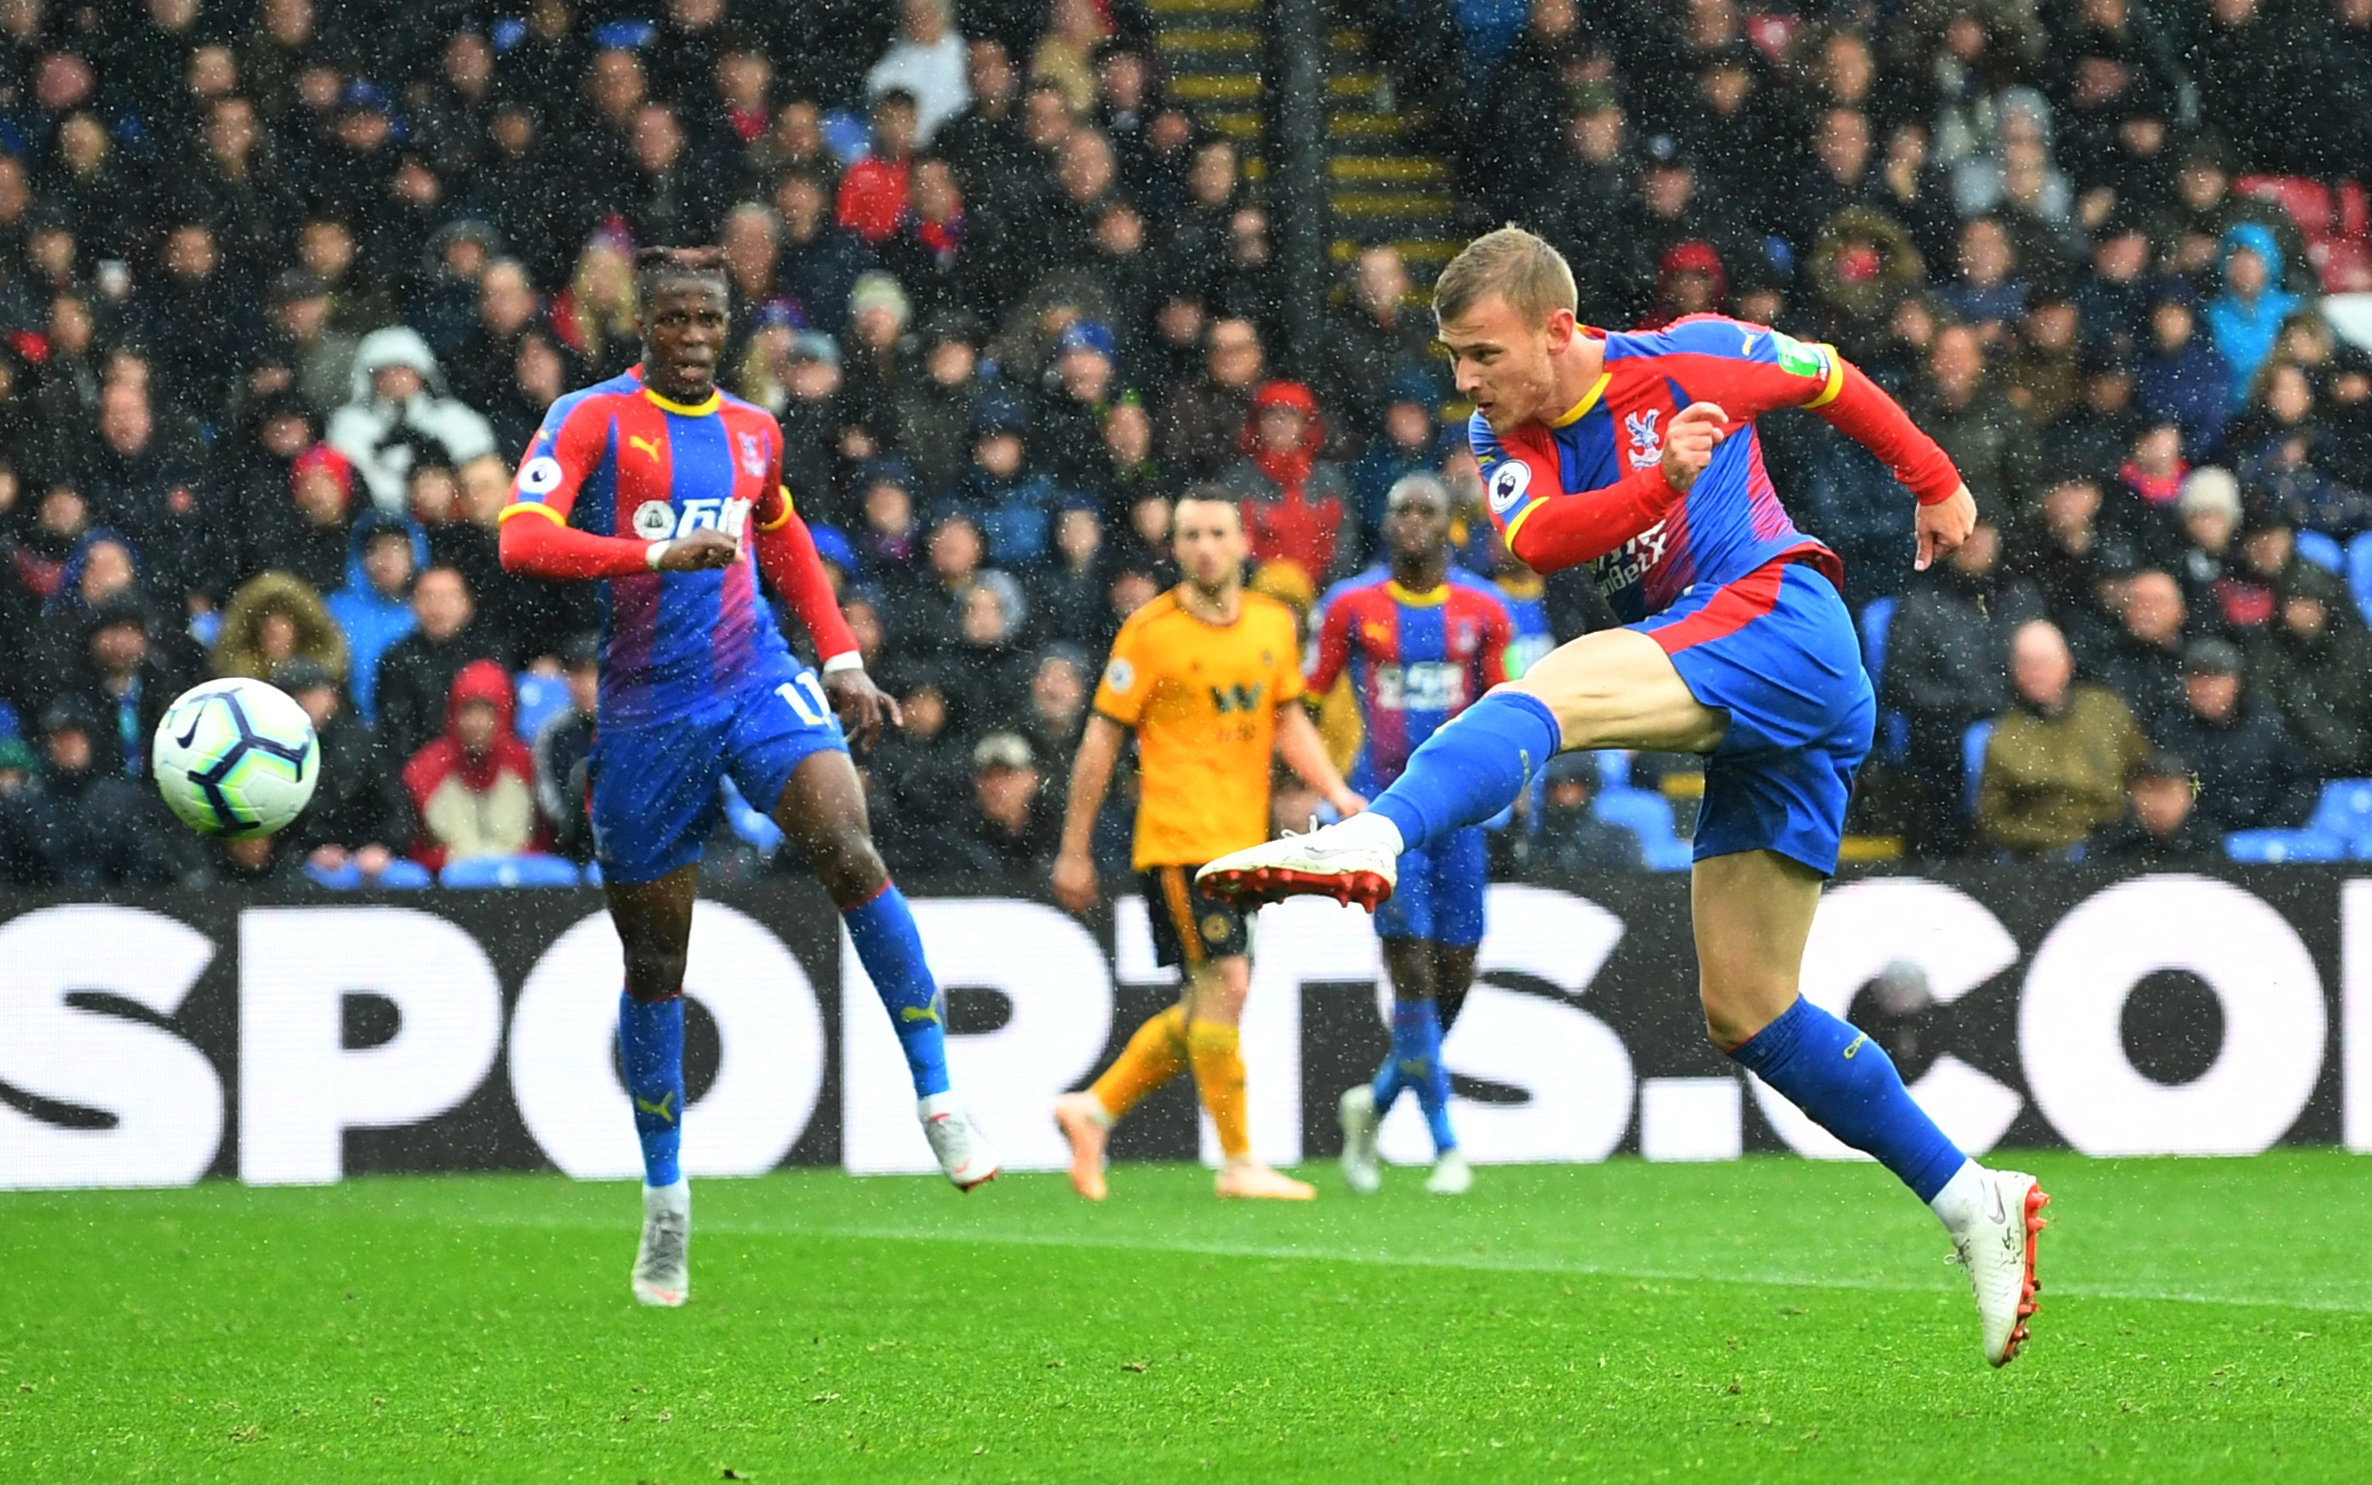 Poor Start For Wolves Makes Fixture All The More Precarious For Palace